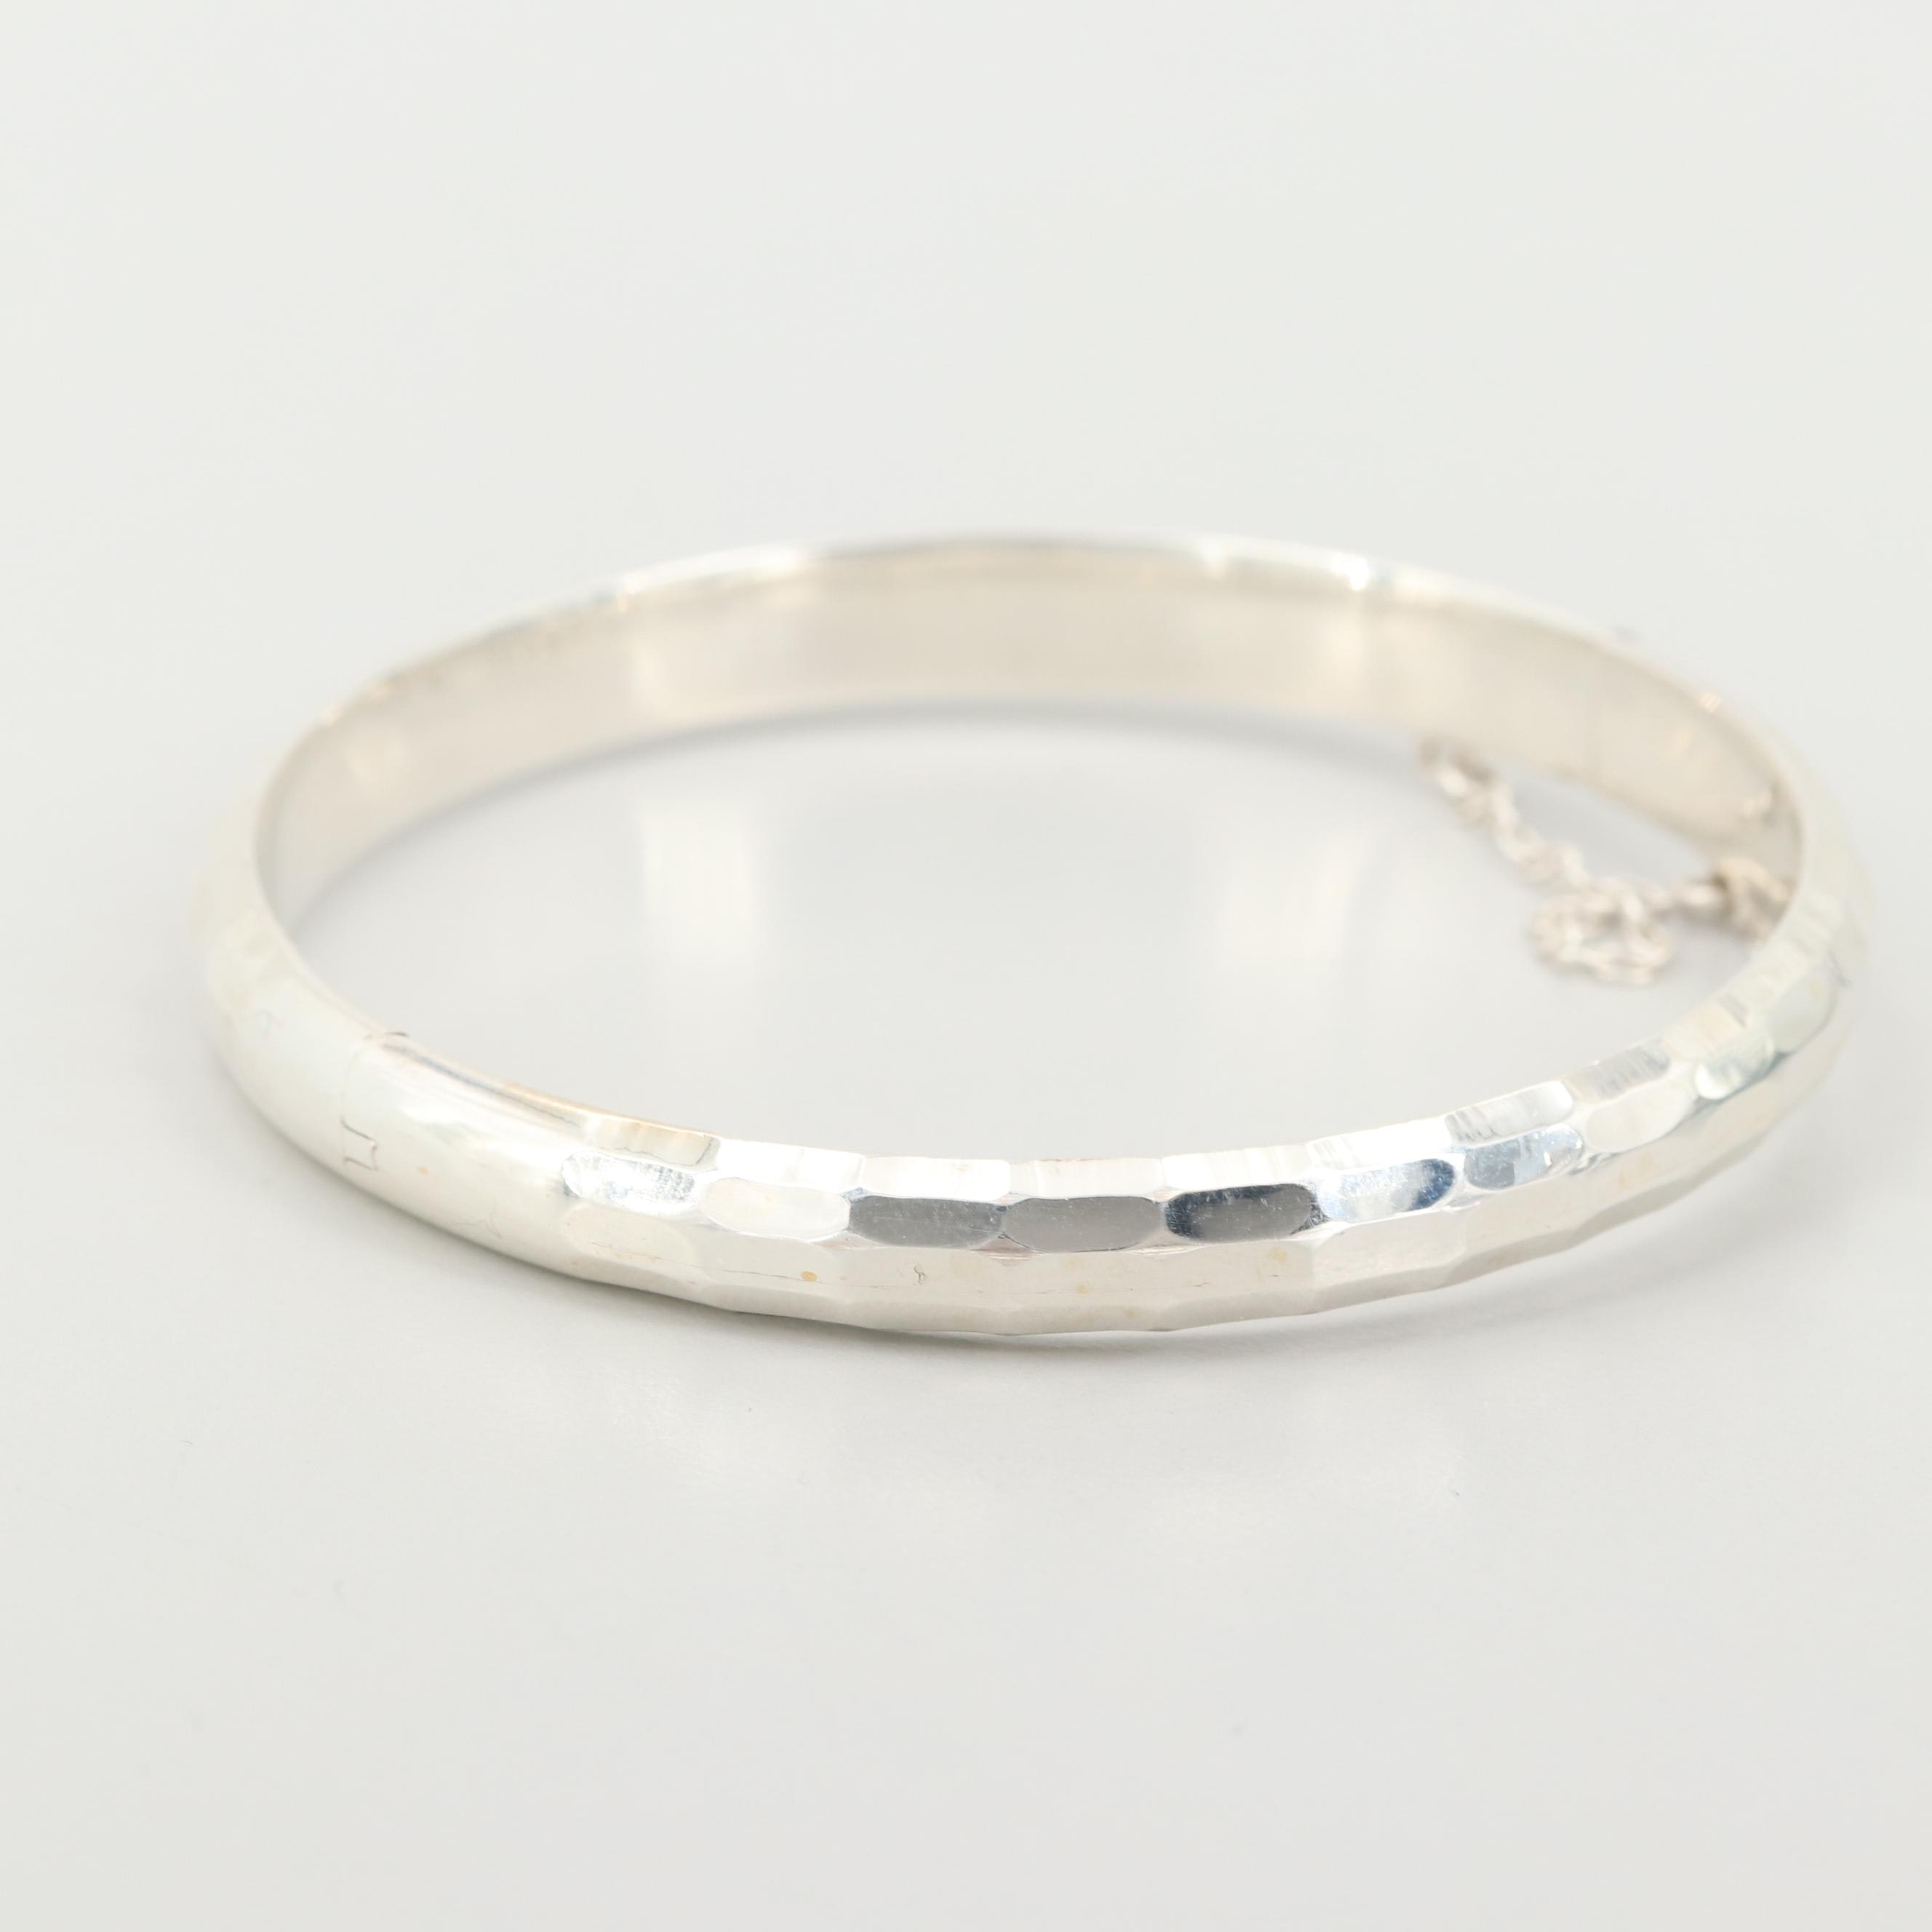 Sterling Silver Hinged Bangle Bracelet with Faceted Design